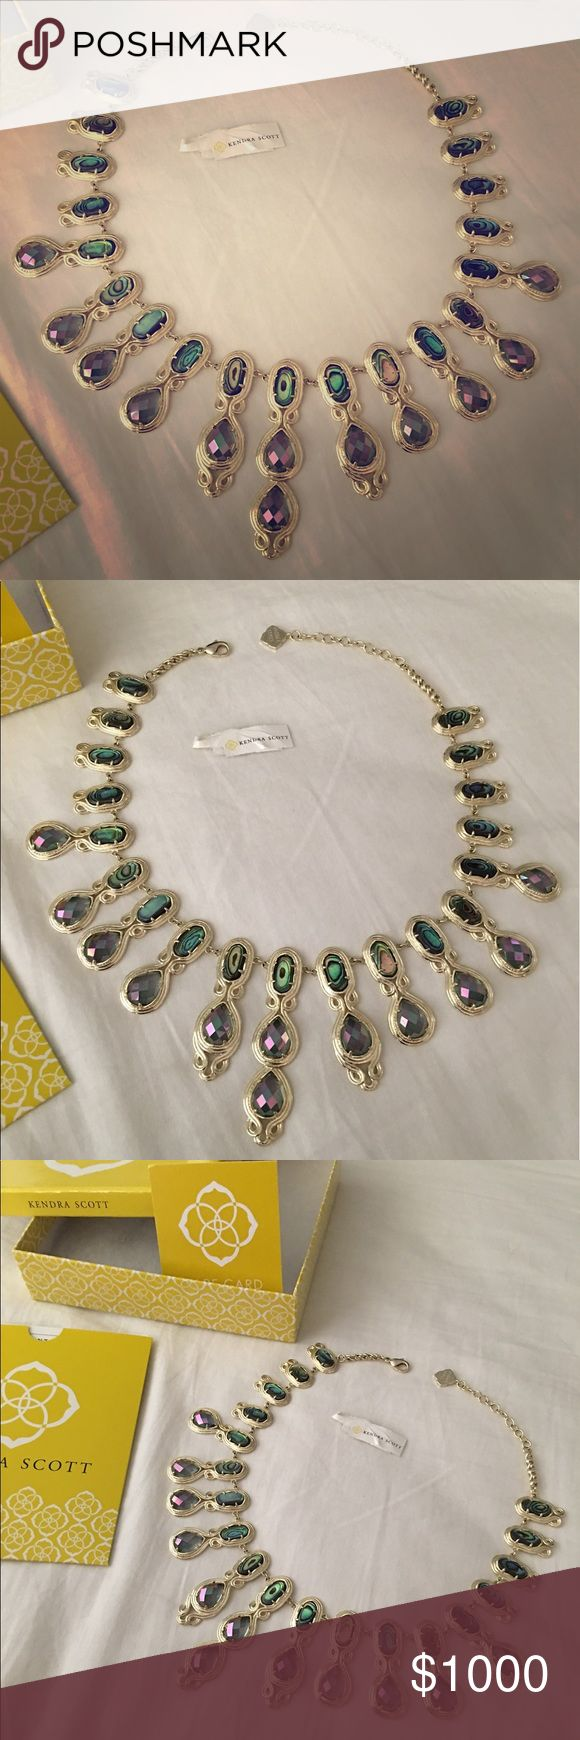 Kendra Scott authentic Whitney in abalone gypsy Authentic Kendra Scott Whitney in abalone gypsy. This is my first KS necklace purchase. Only willing to part for the right price. Always kept in the original box. Reviewing reasonable offers only. Thank you 🌺 Kendra Scott Jewelry Necklaces